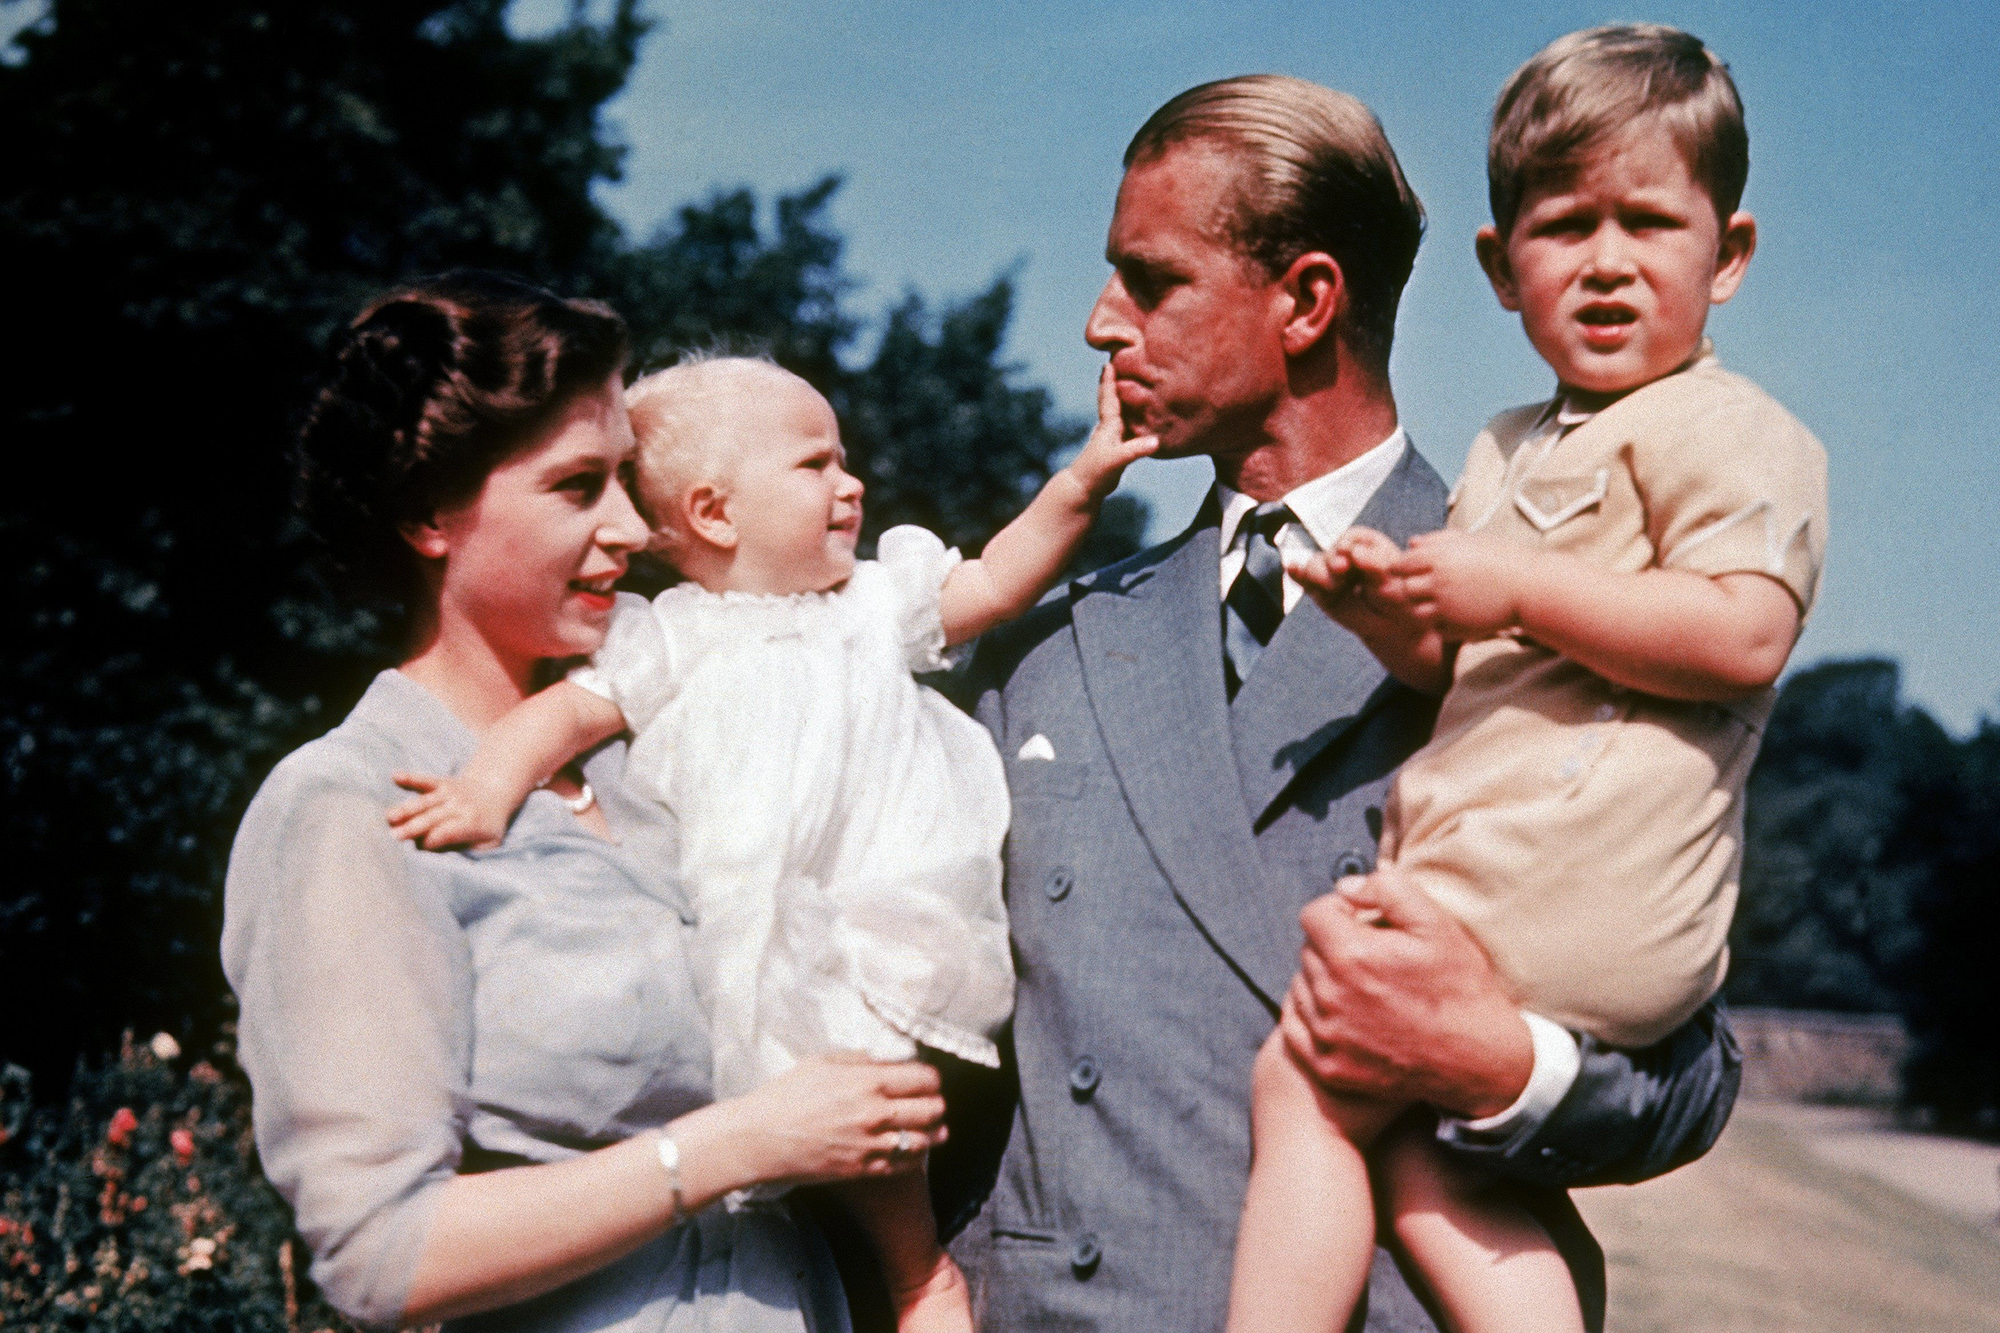 The English Royal Family In 1951